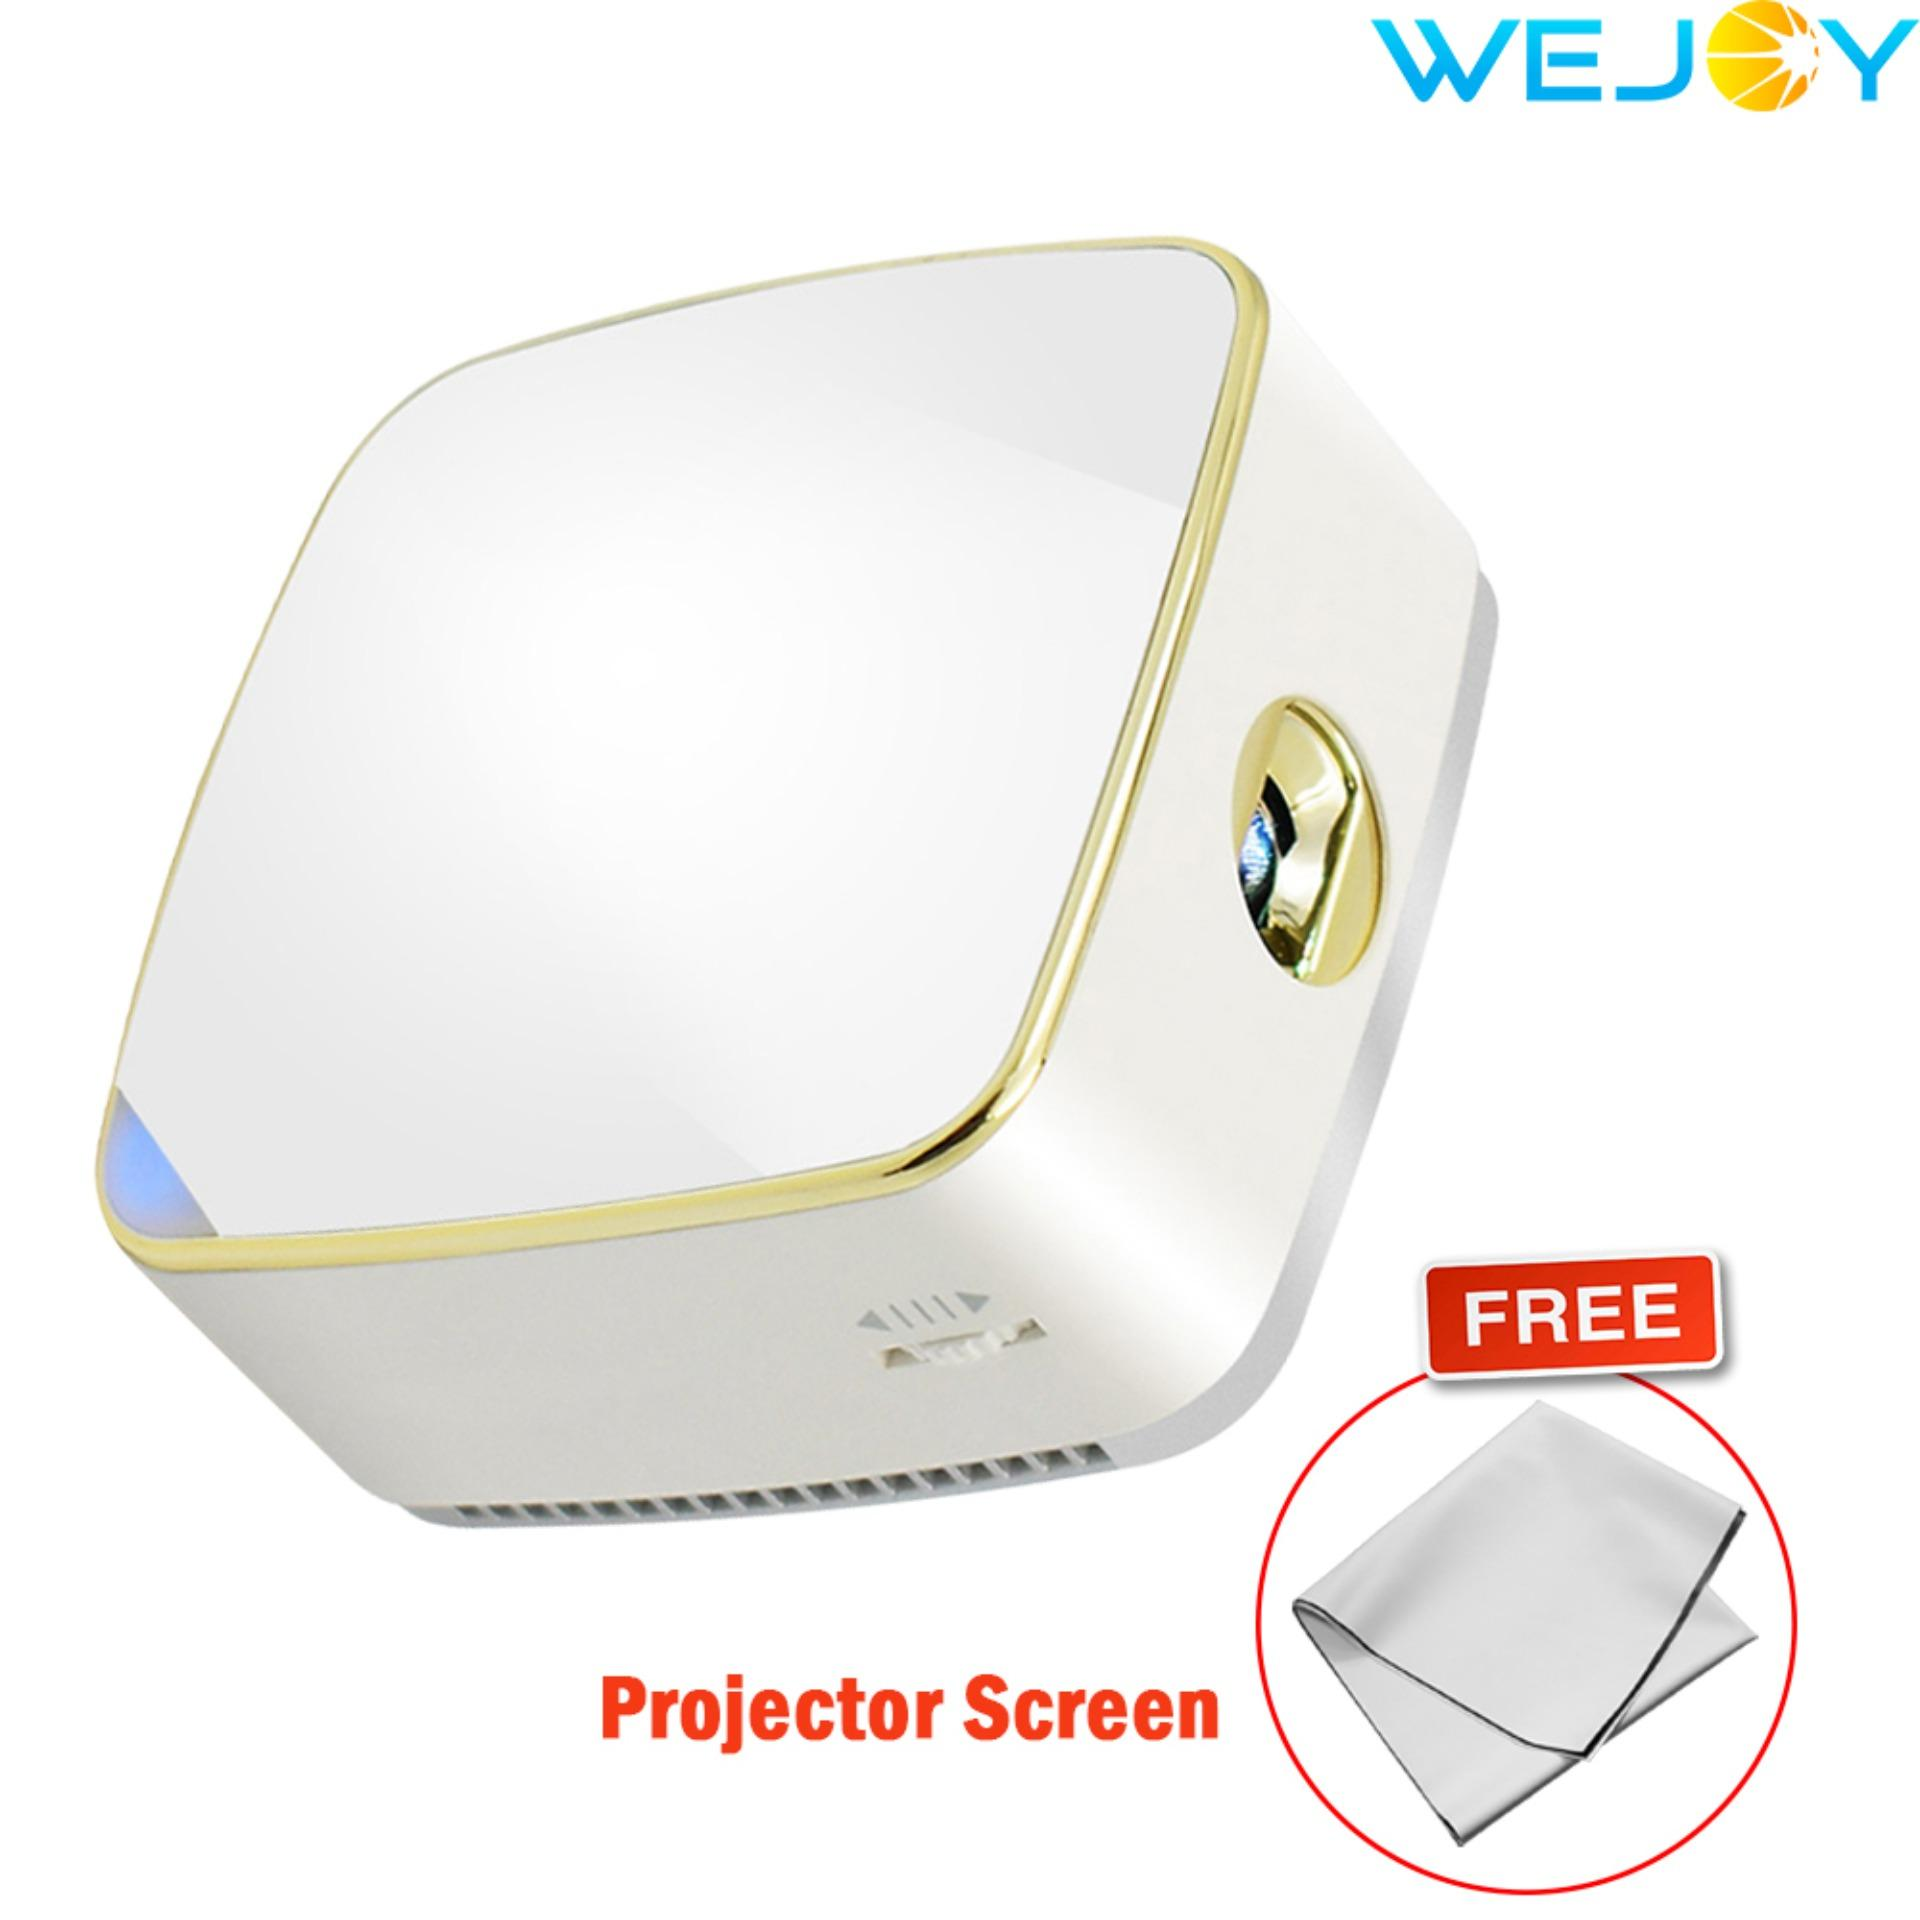 Wejoy Dl S8 Led Projector Hd Pico Portable Audio Video Projector Compatible With Iphone Ipad Android Phones With Free Projector Screen Free Shipping